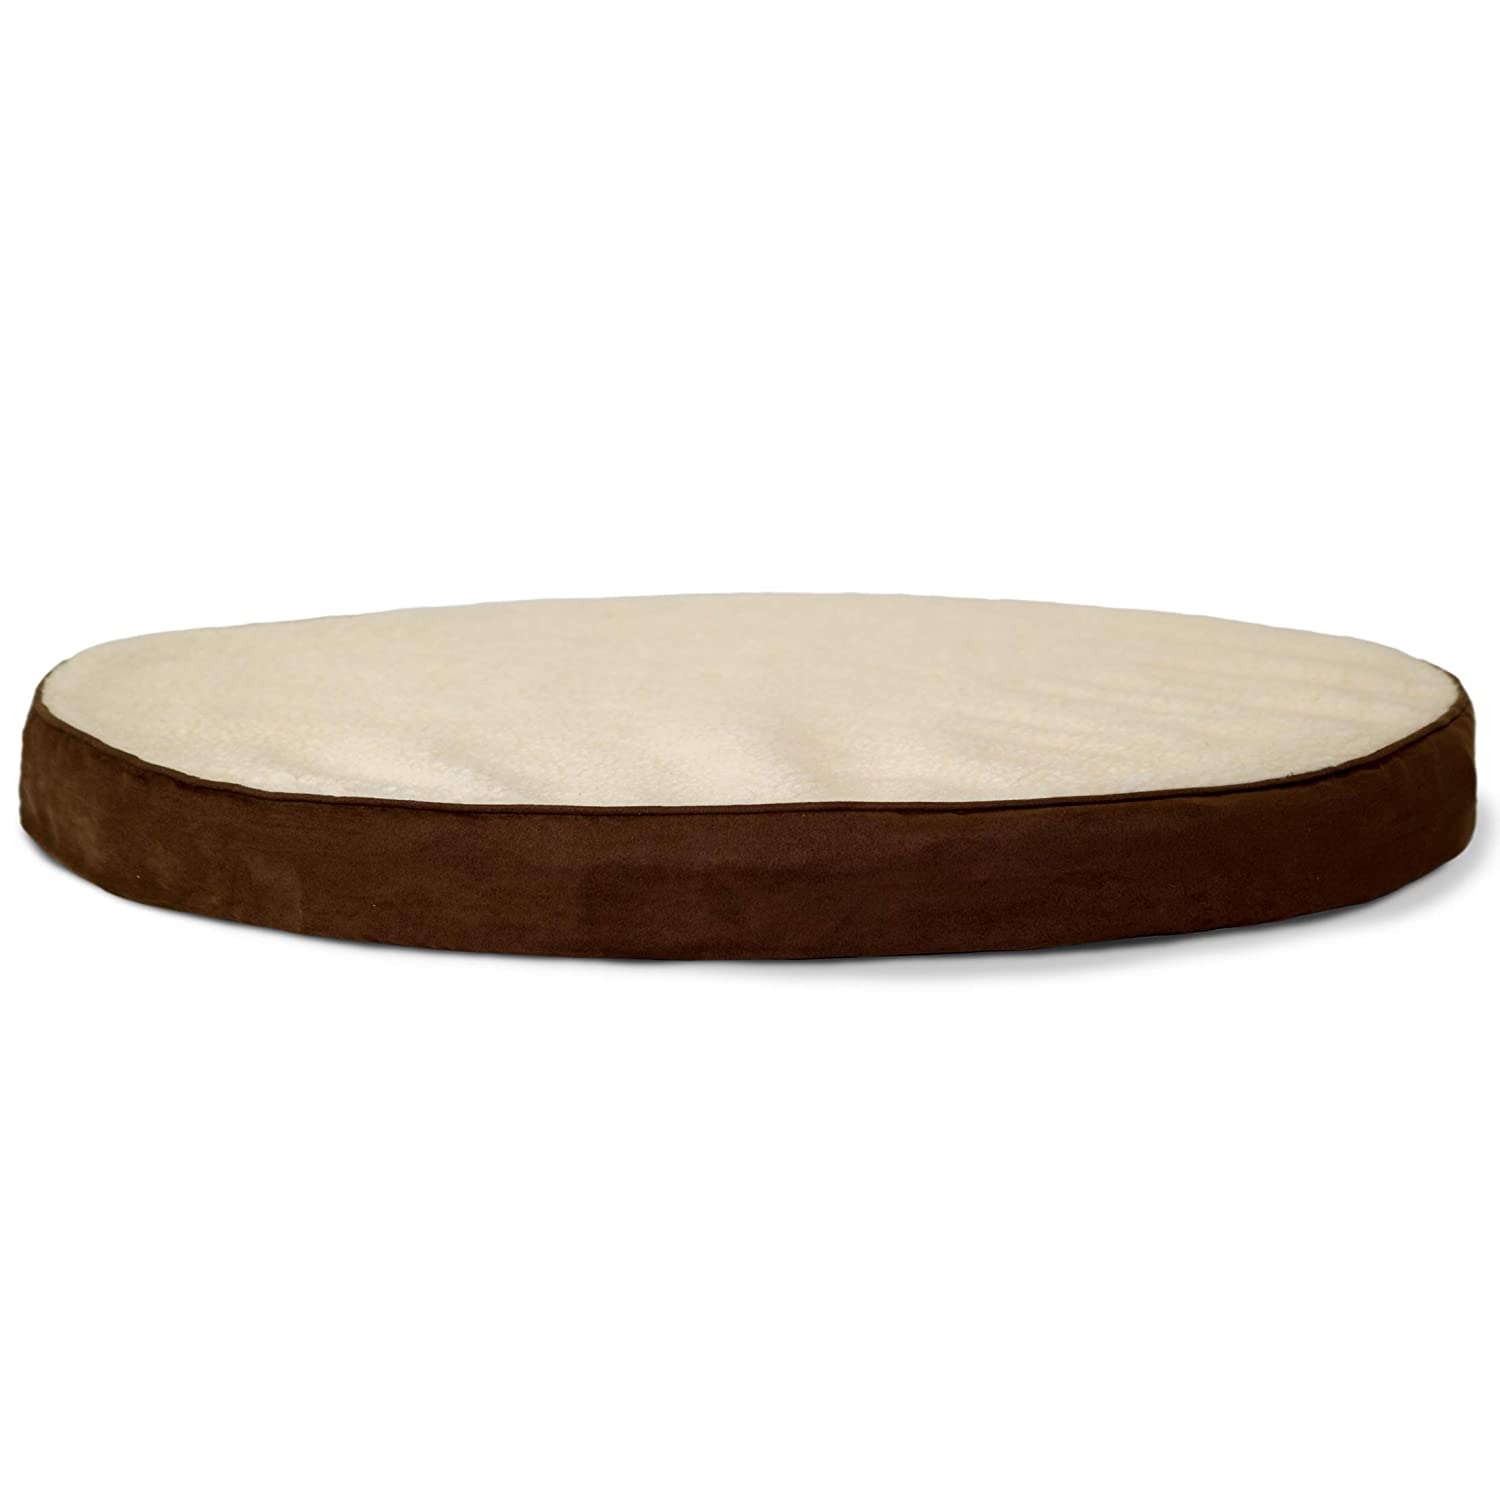 Furhaven Pet Dog Bed - Orthopedic Round Oval Faux Sheepskin Sherpa and Suede Foam Mattress Pet Bed with Removable Cover for Dogs and Cats, Espresso, Large